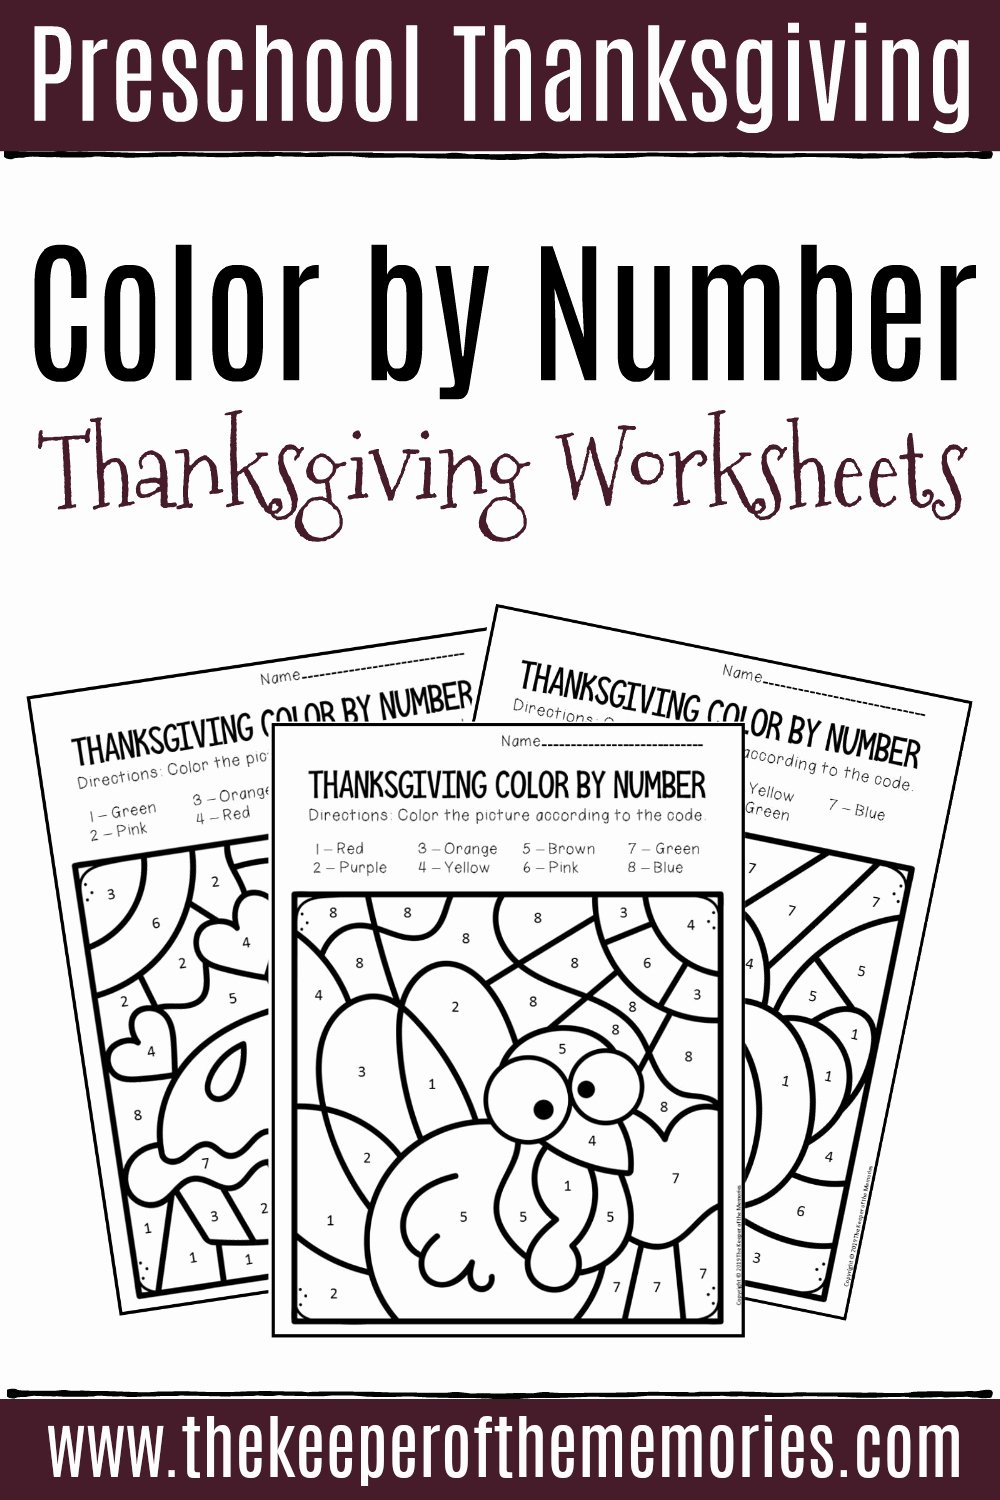 Thanksgiving Counting Worksheets for Preschoolers Free Color by Number Thanksgiving Preschool Worksheets